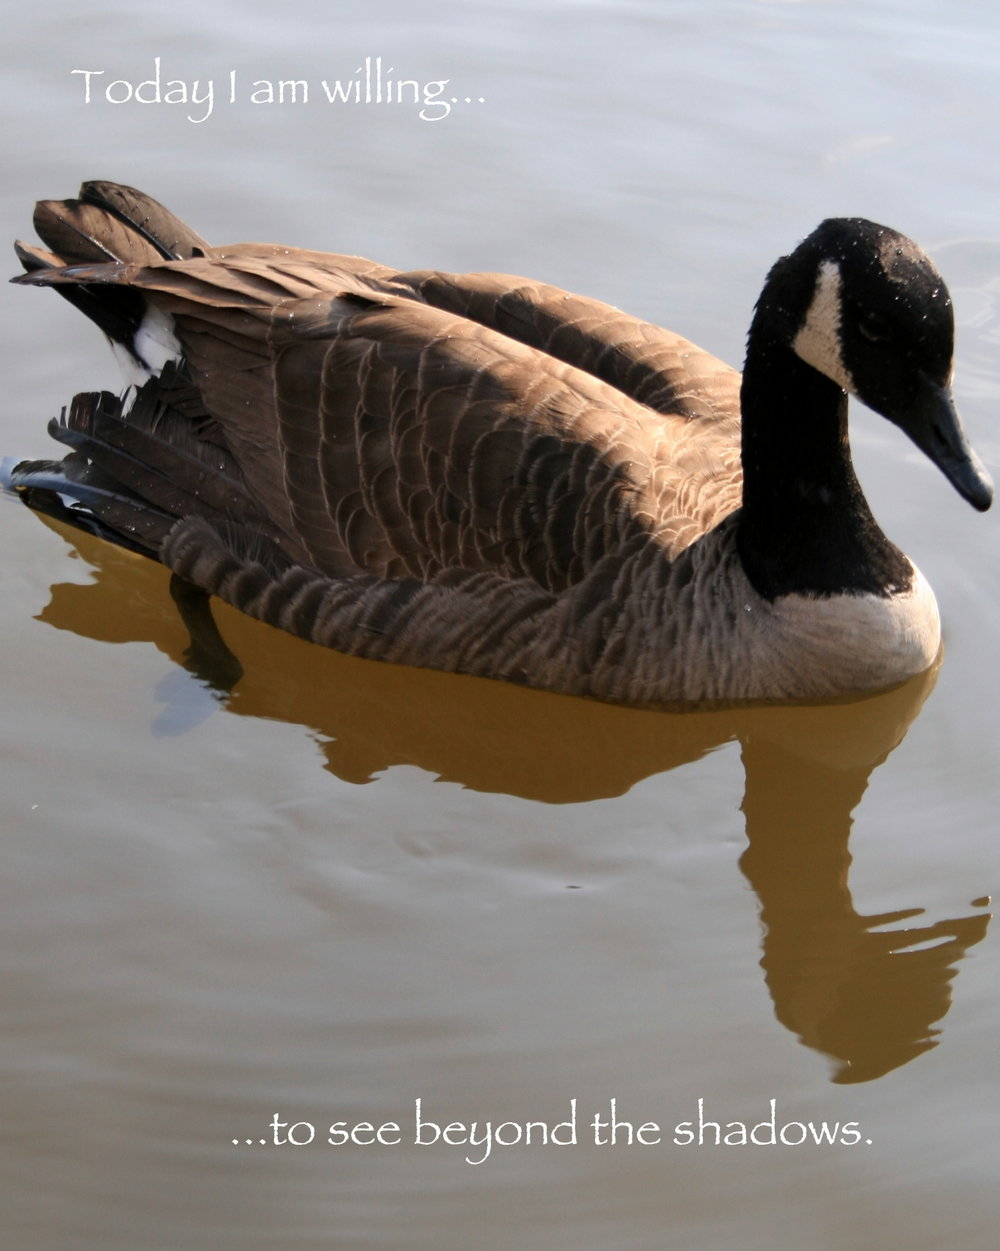 Goose_see beyond the shadows.JPG